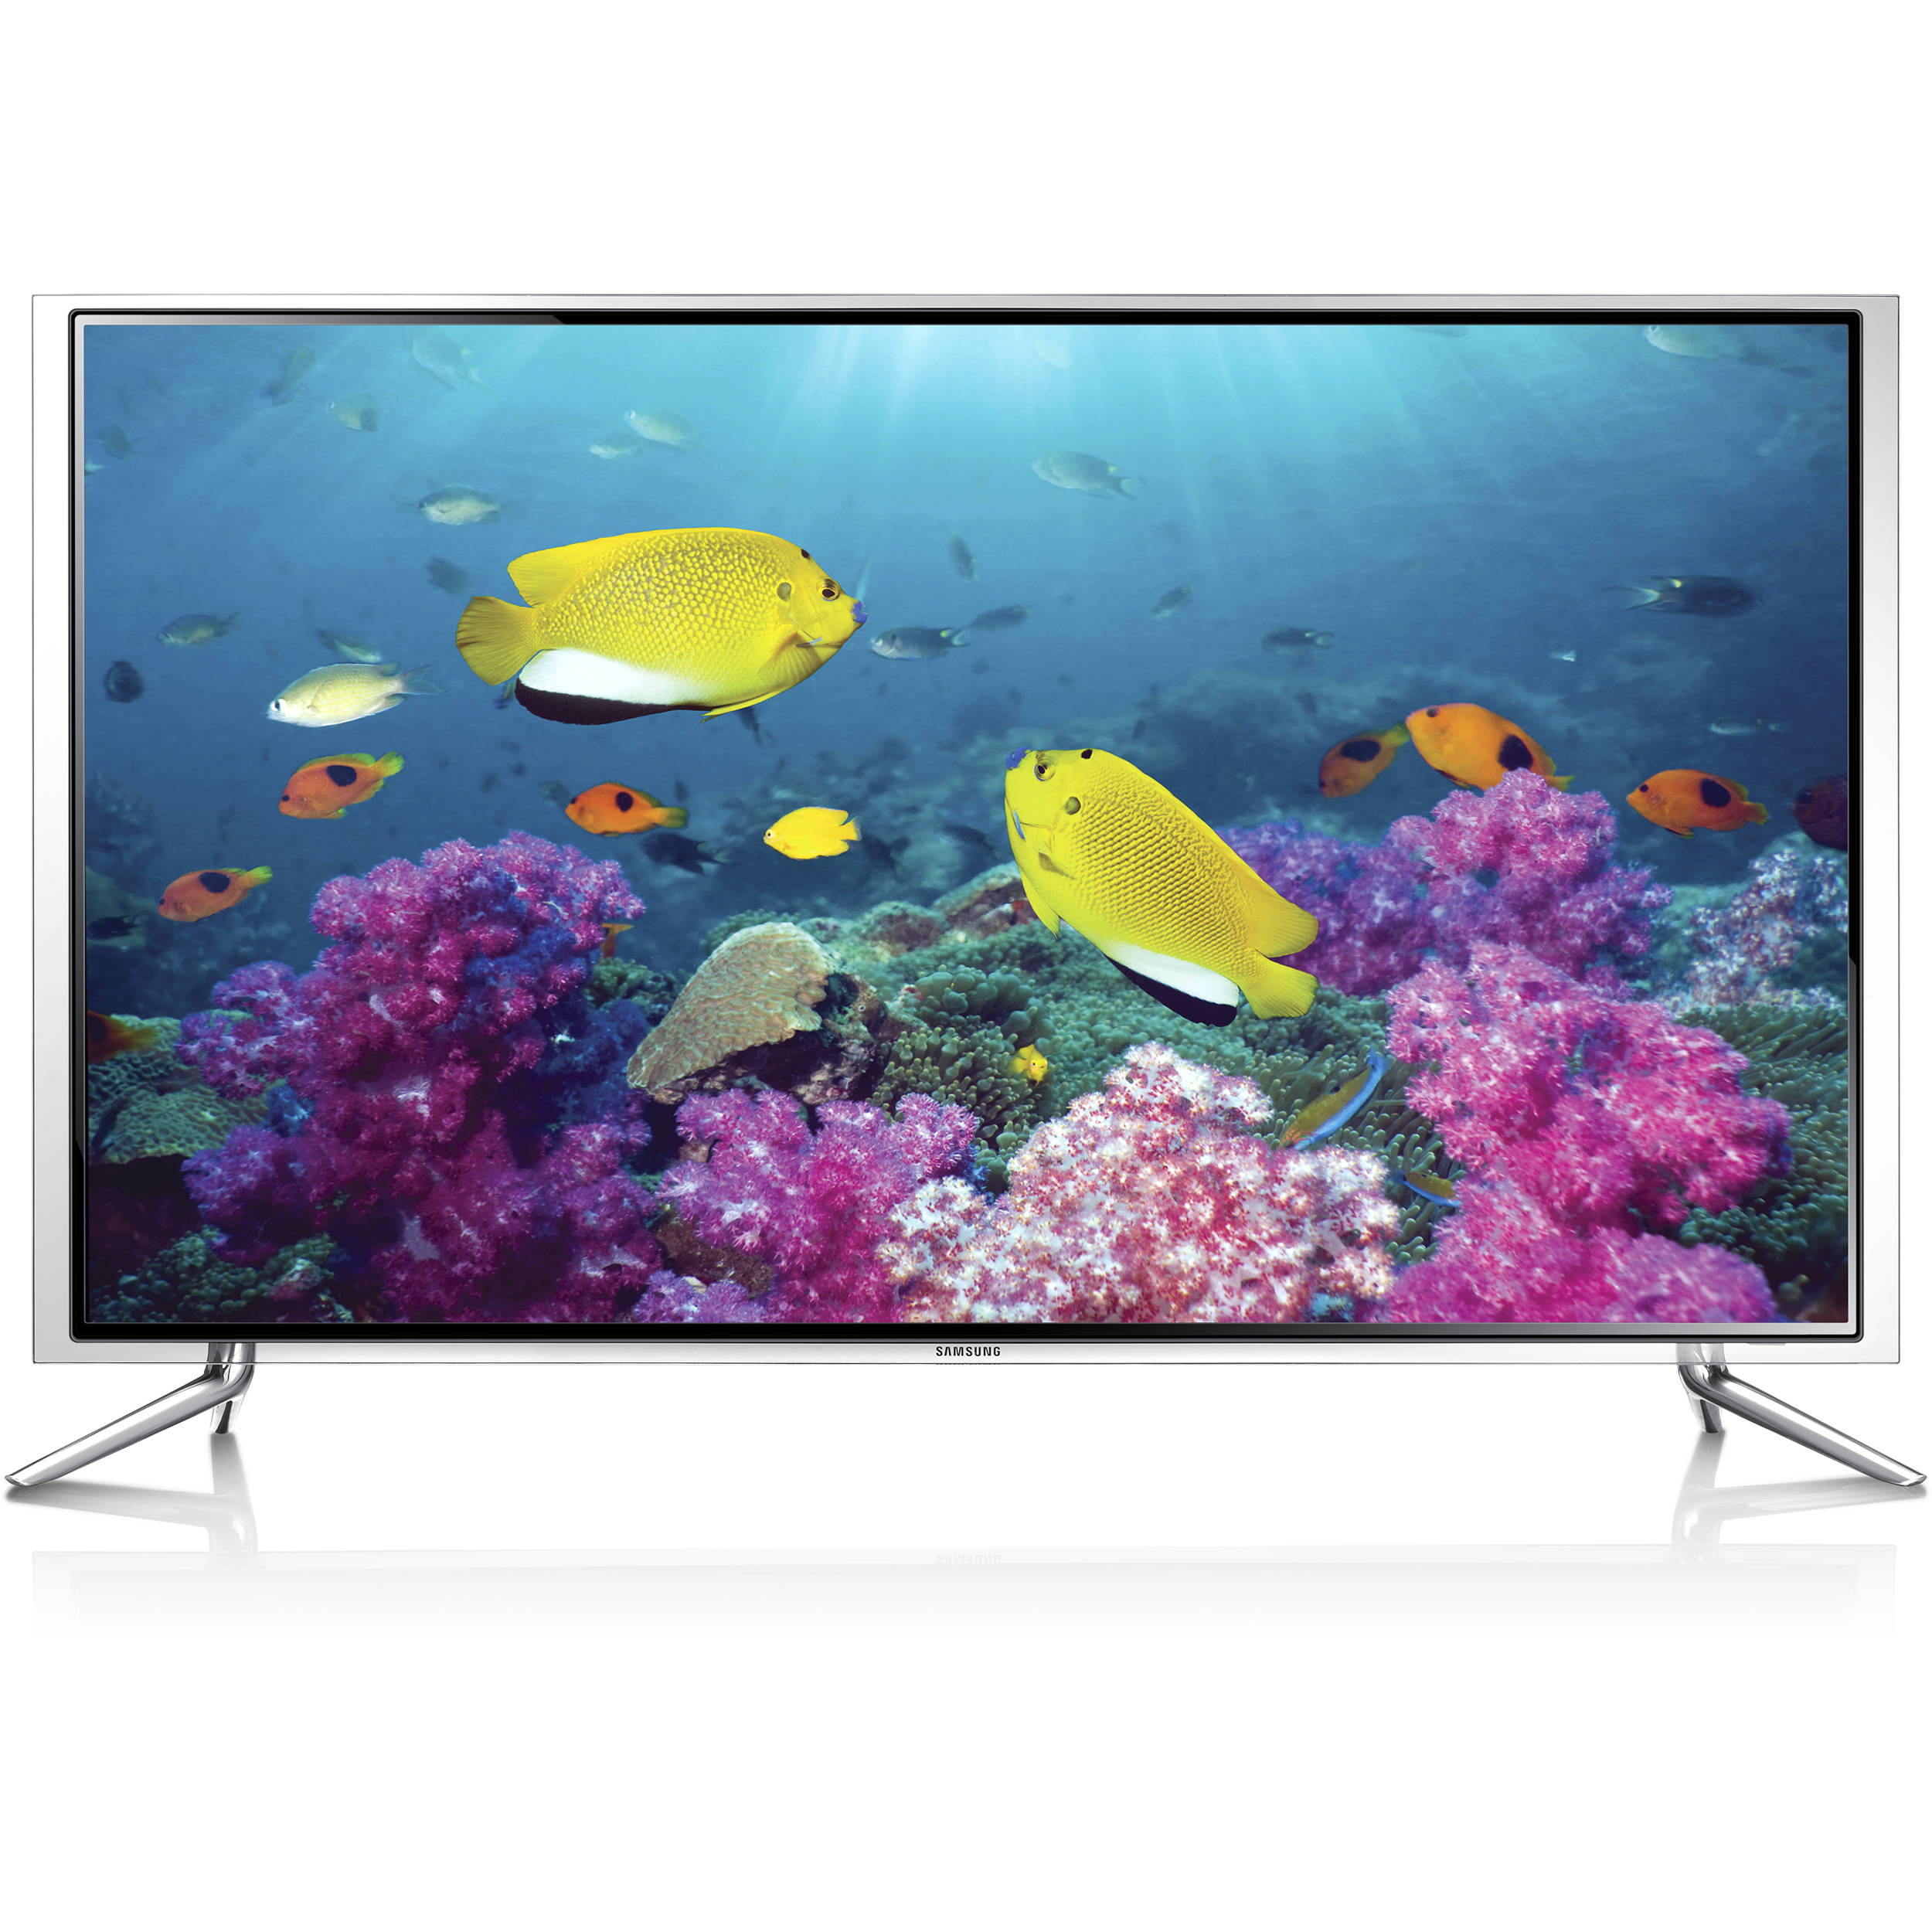 Samsung 46 6800 Series Full Hd Smart 3d Led Un46f6800afxza Easy To Program Touch Lcds Tv